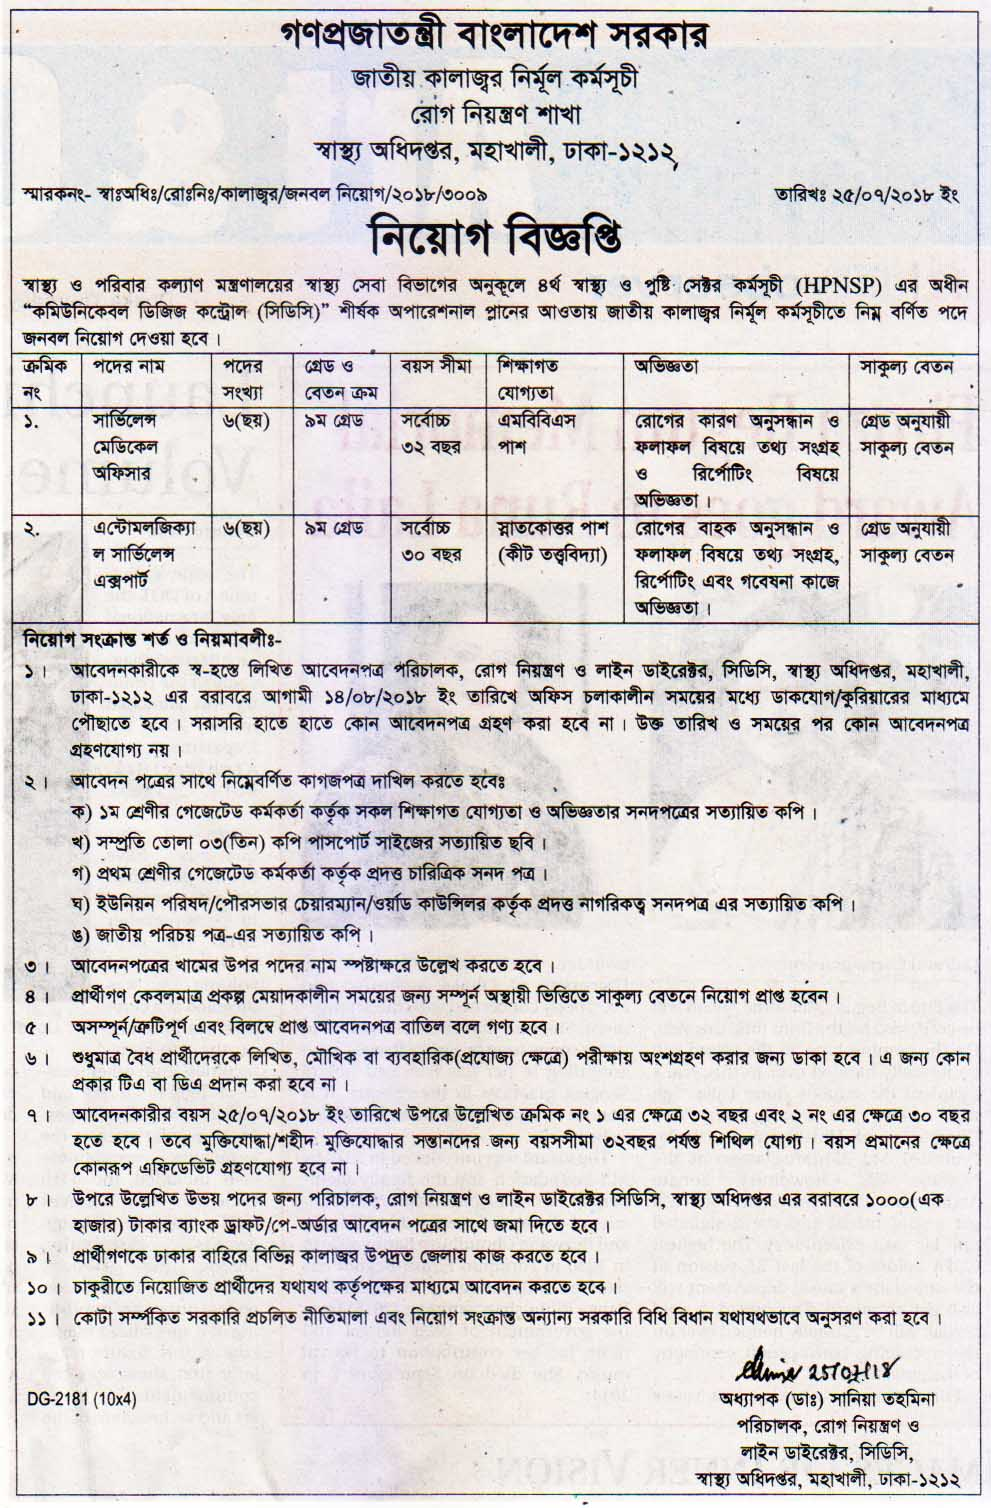 Ministry of Health and Family Welfare Job Circular 2018